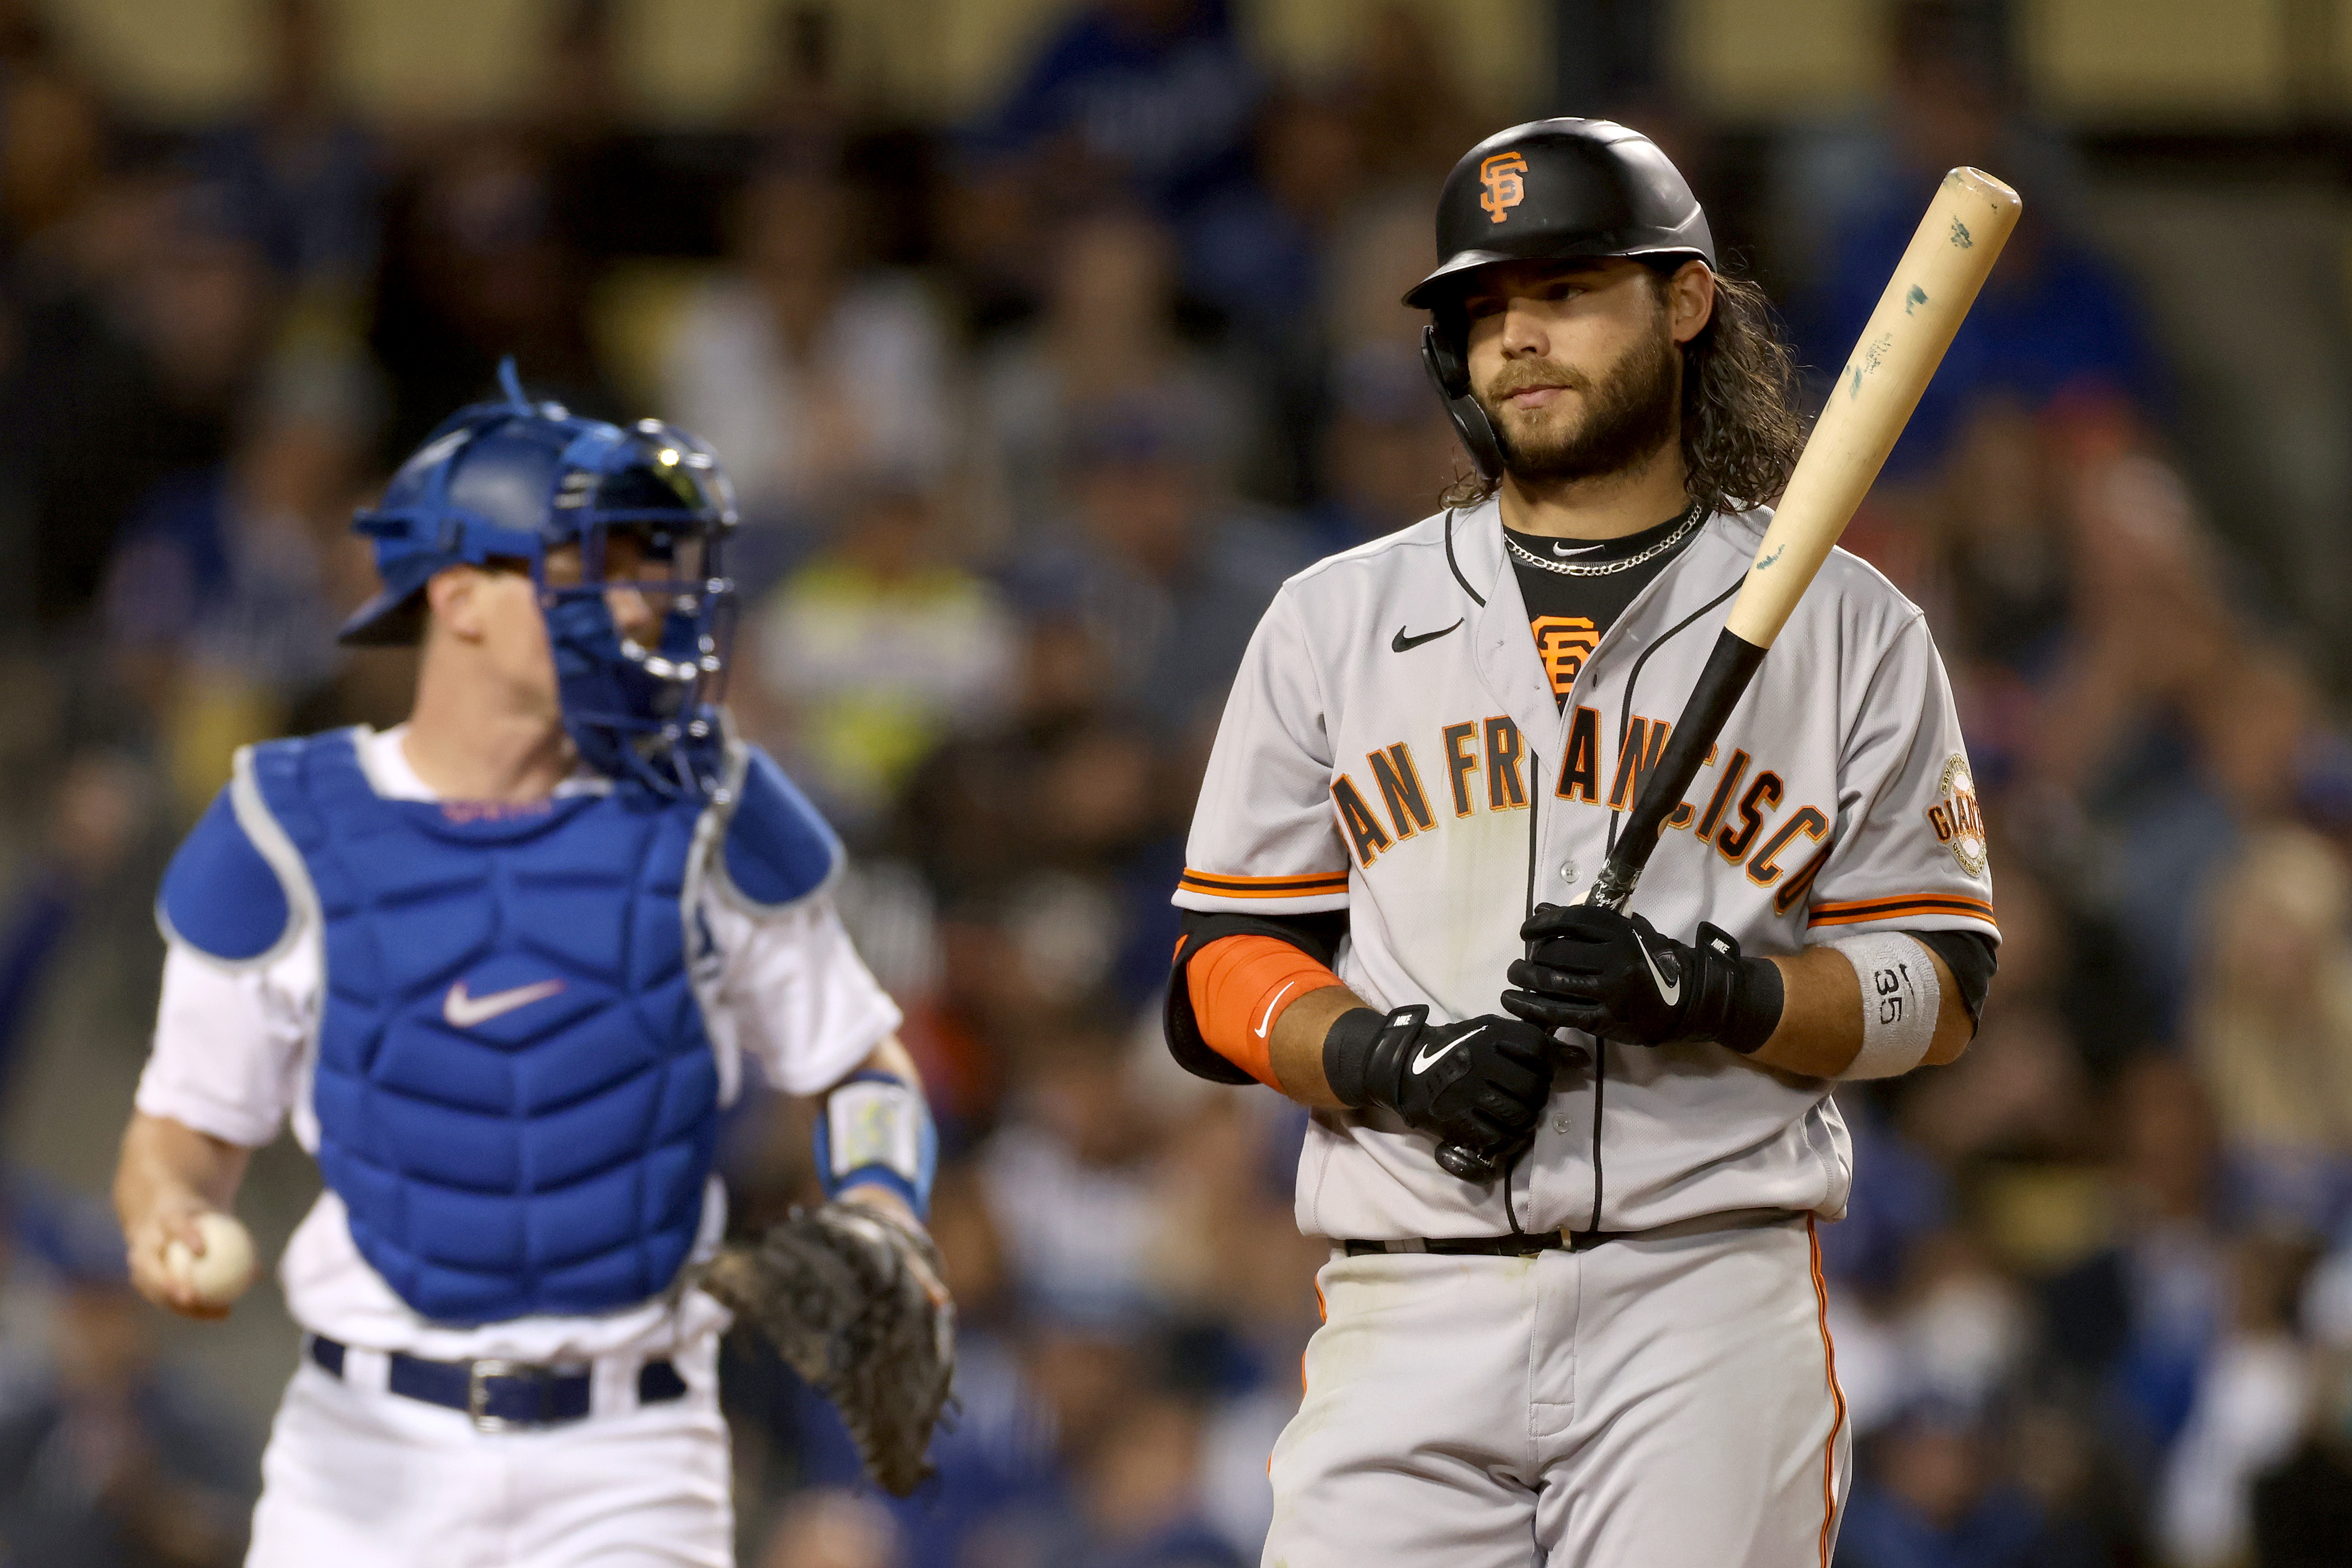 Brandon Crawford #35 of the San Francisco Giants reacts after striking out against the Los Angeles Dodgers during the fourth inning in game 4 of the National League Division Series at Dodger Stadium on October 12, 2021 in Los Angeles, California.